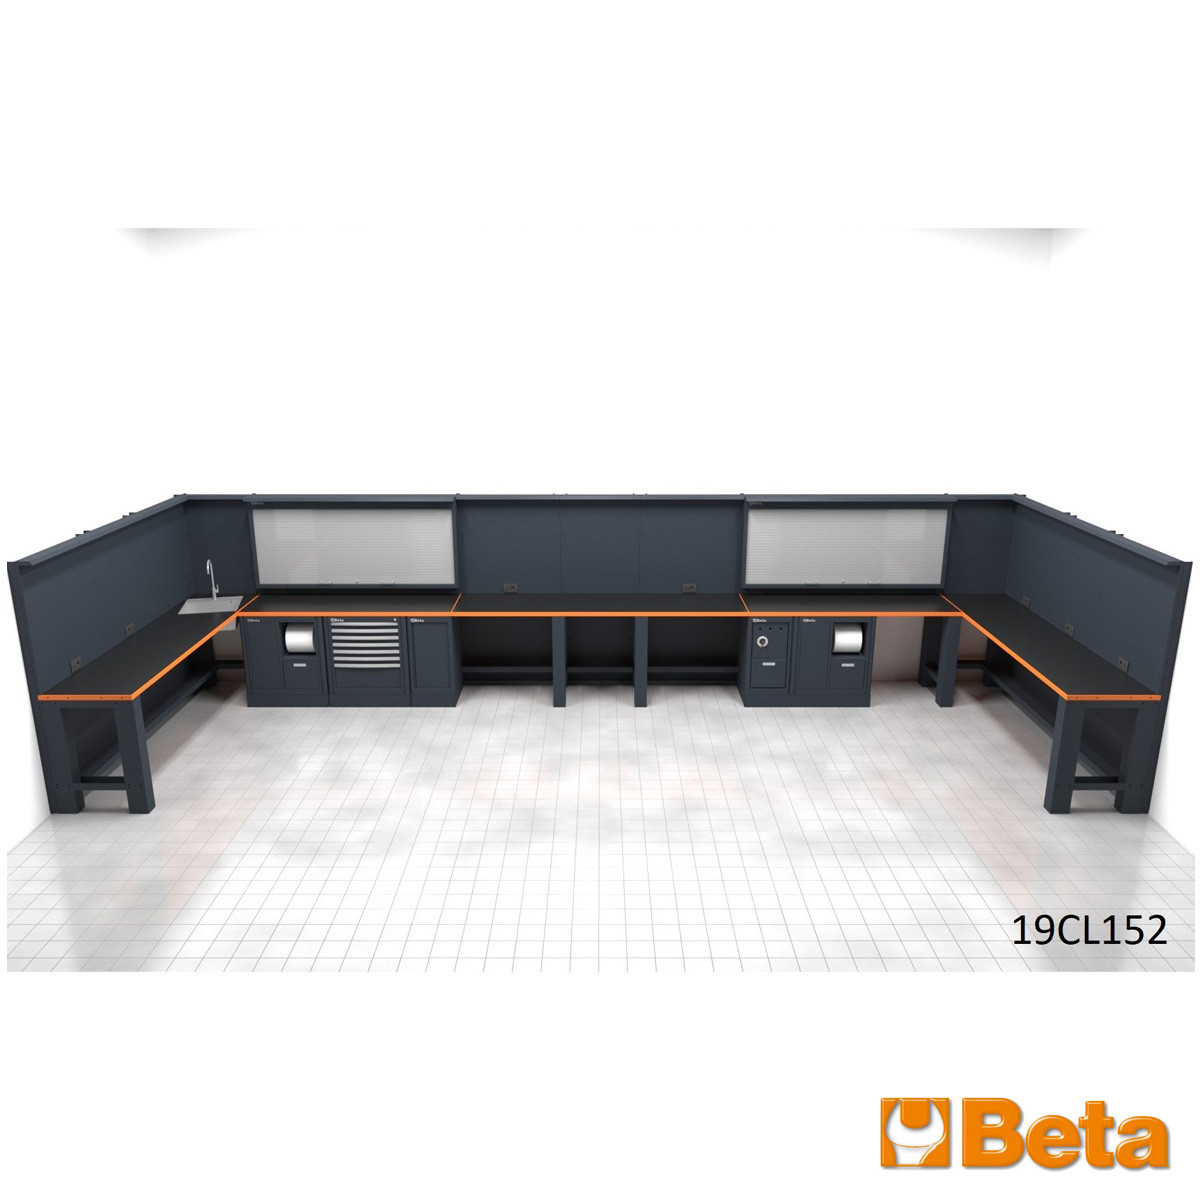 Beta Modular Workbenches